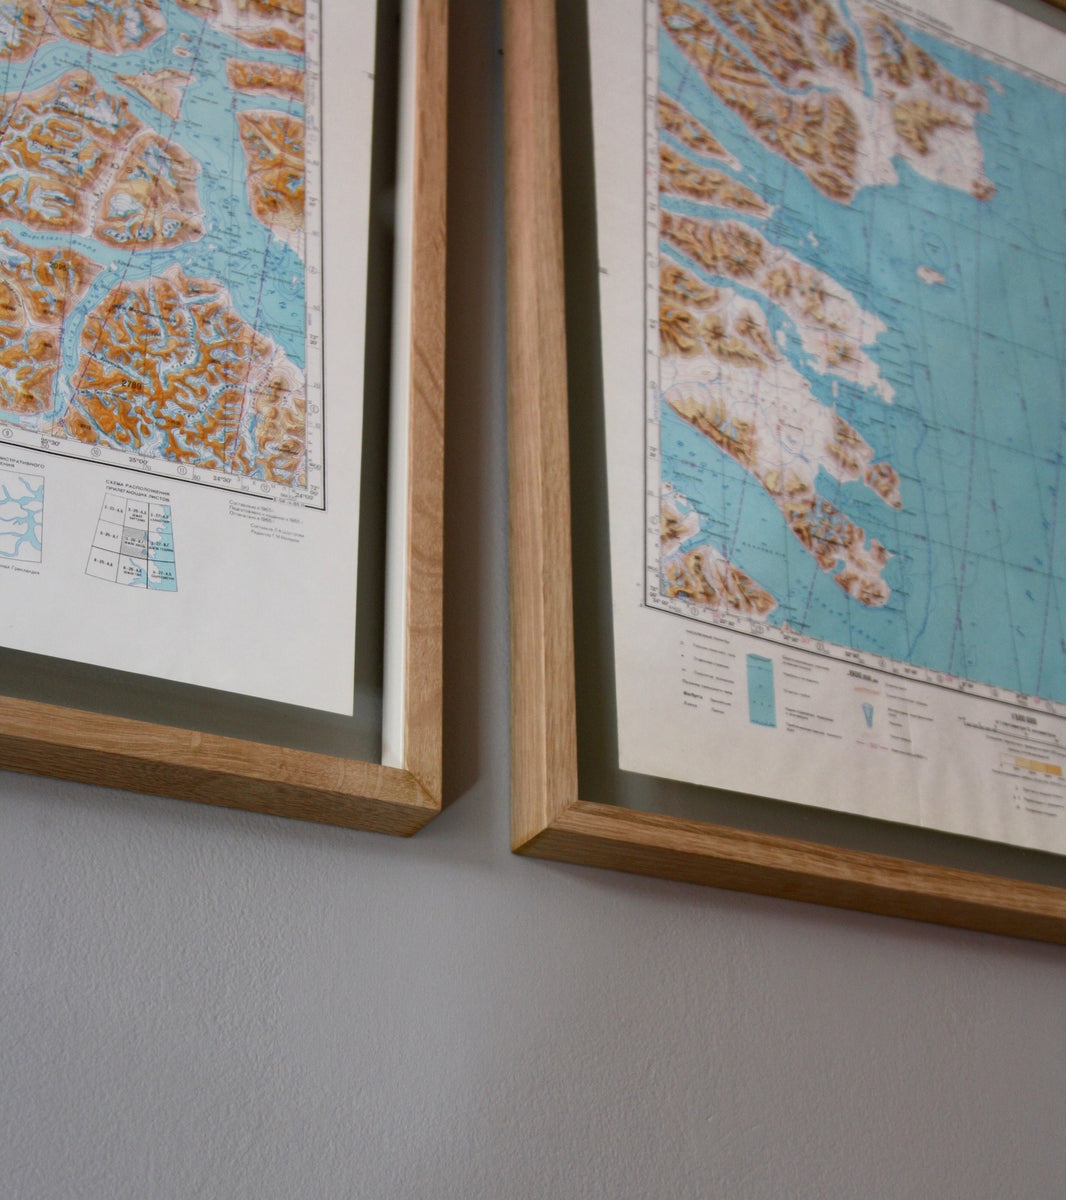 Vintage Pair of 1960s Soviet Maps of Greenland - Image 5